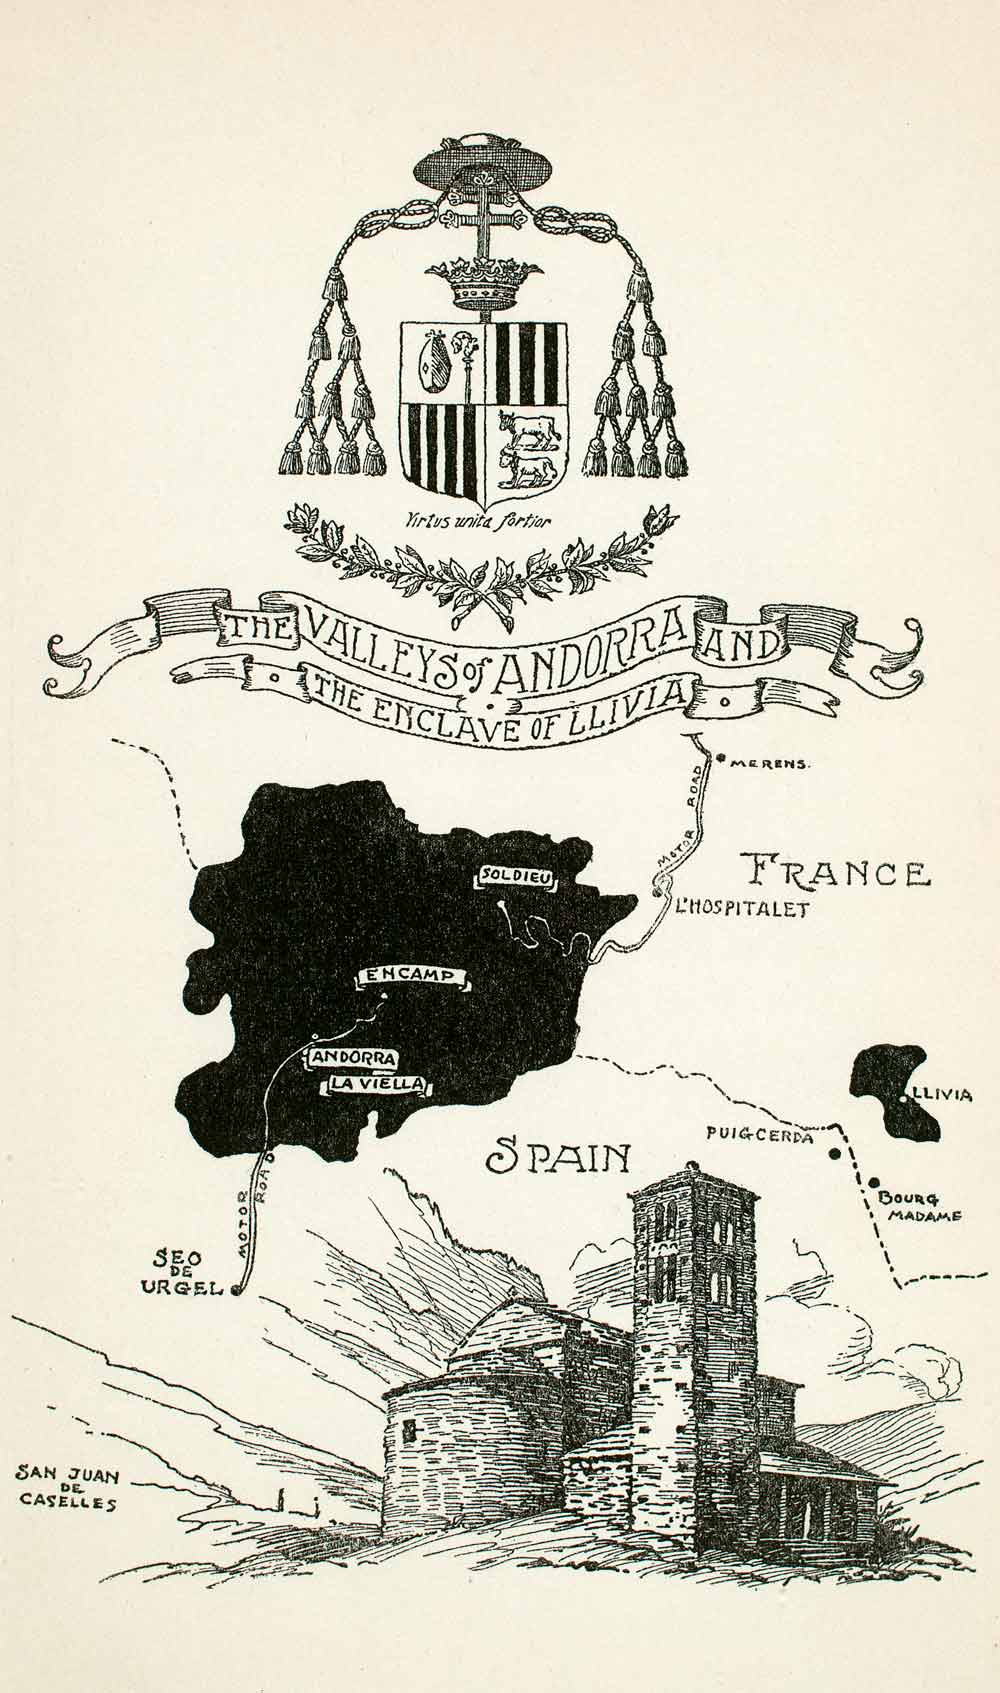 Map Of Spain France And Andorra.1932 Wood Engraving Andorra Enclave Llivia Spain France Map Merens Soldieu Xgoa7